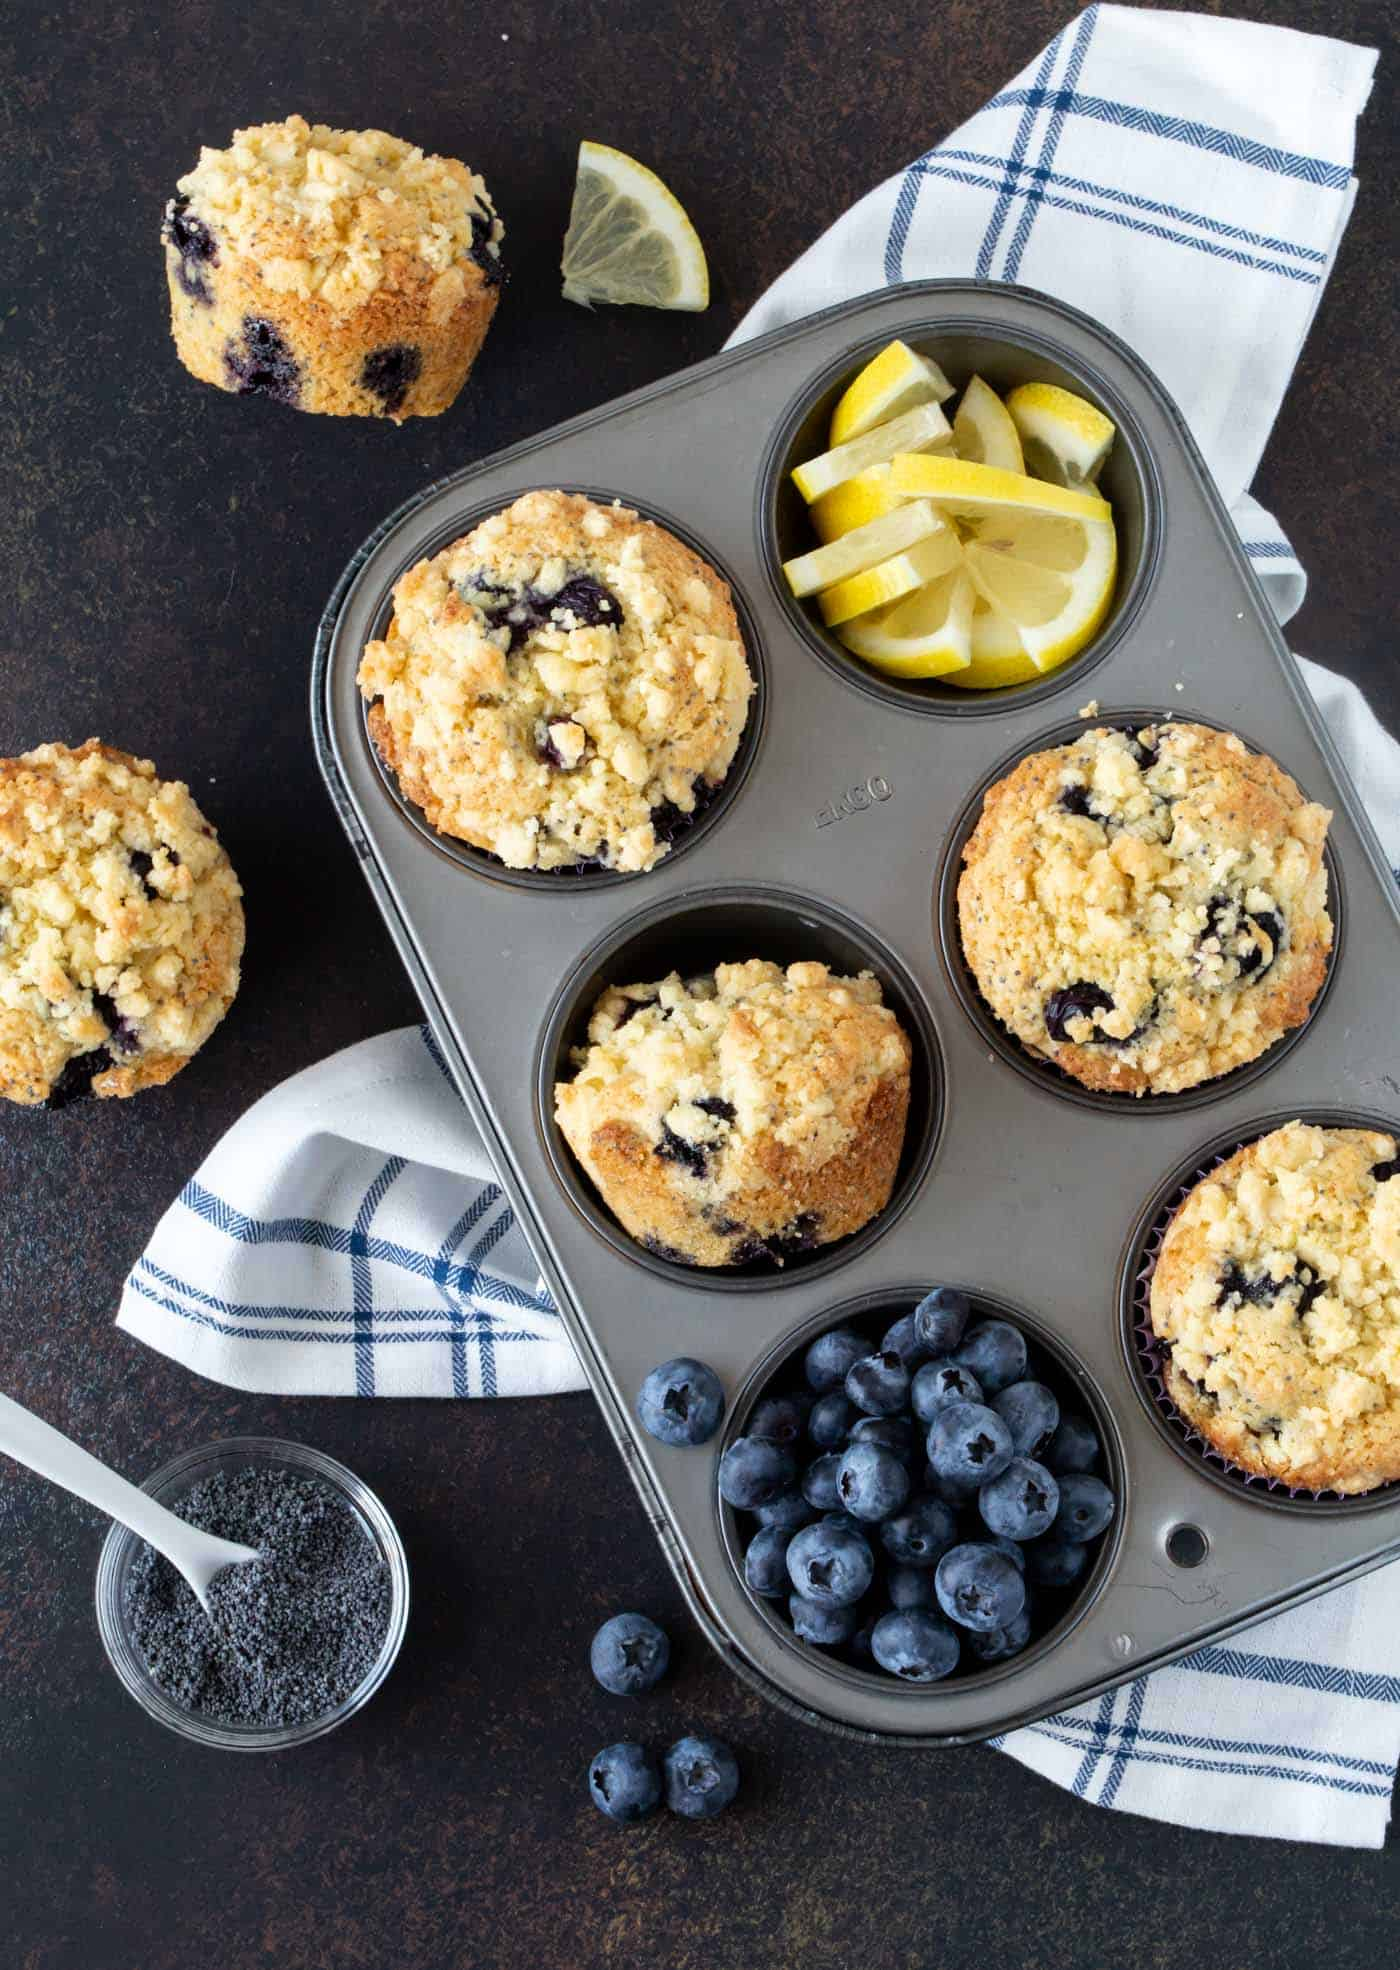 Muffin tin filled with four Blueberry Lemon Poppy Seed Muffins,with fresh blueberries and lemon slices.